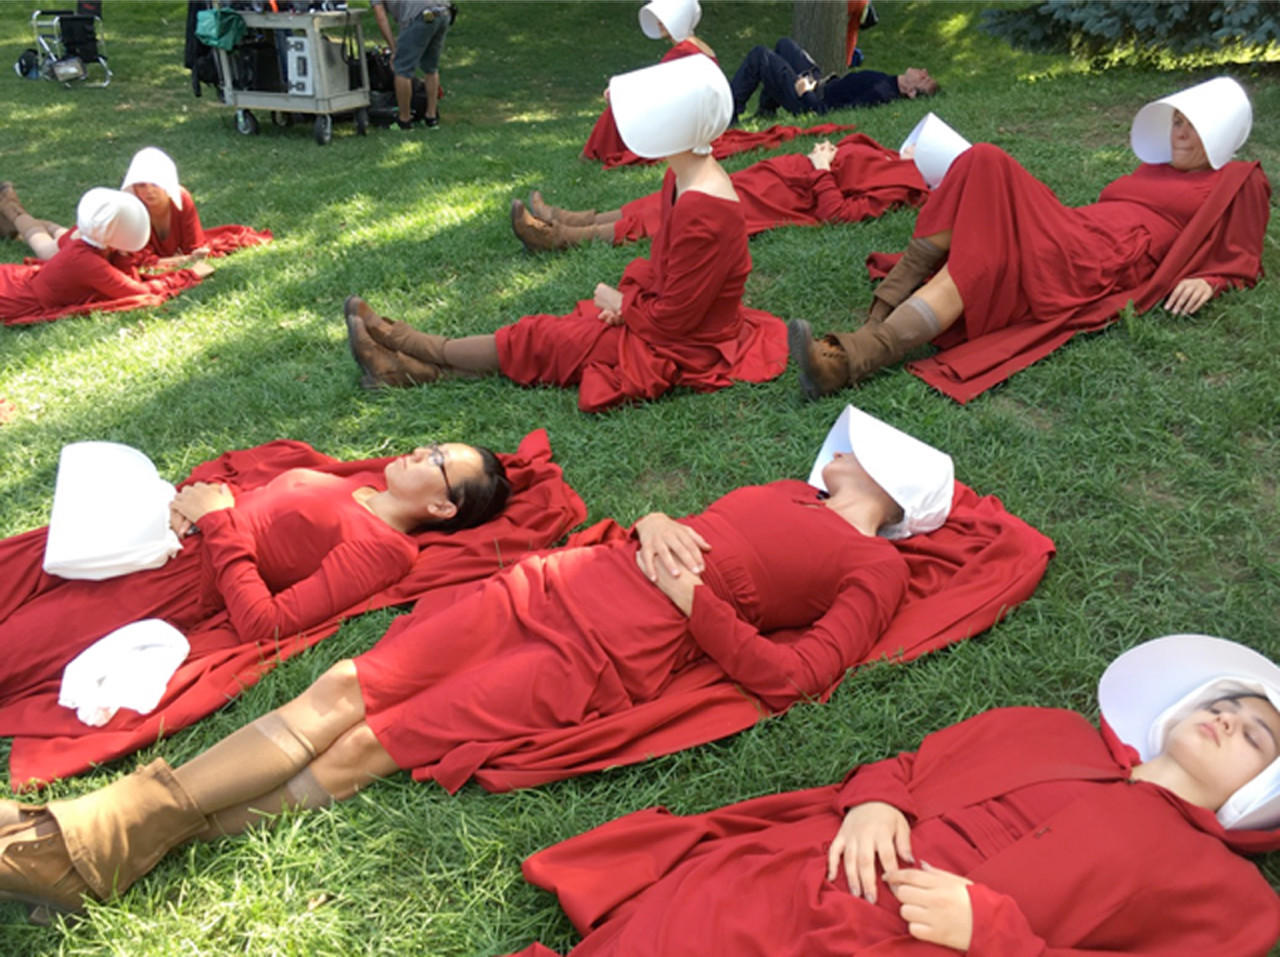 Handmaids at rest. (Ane Crabtree)